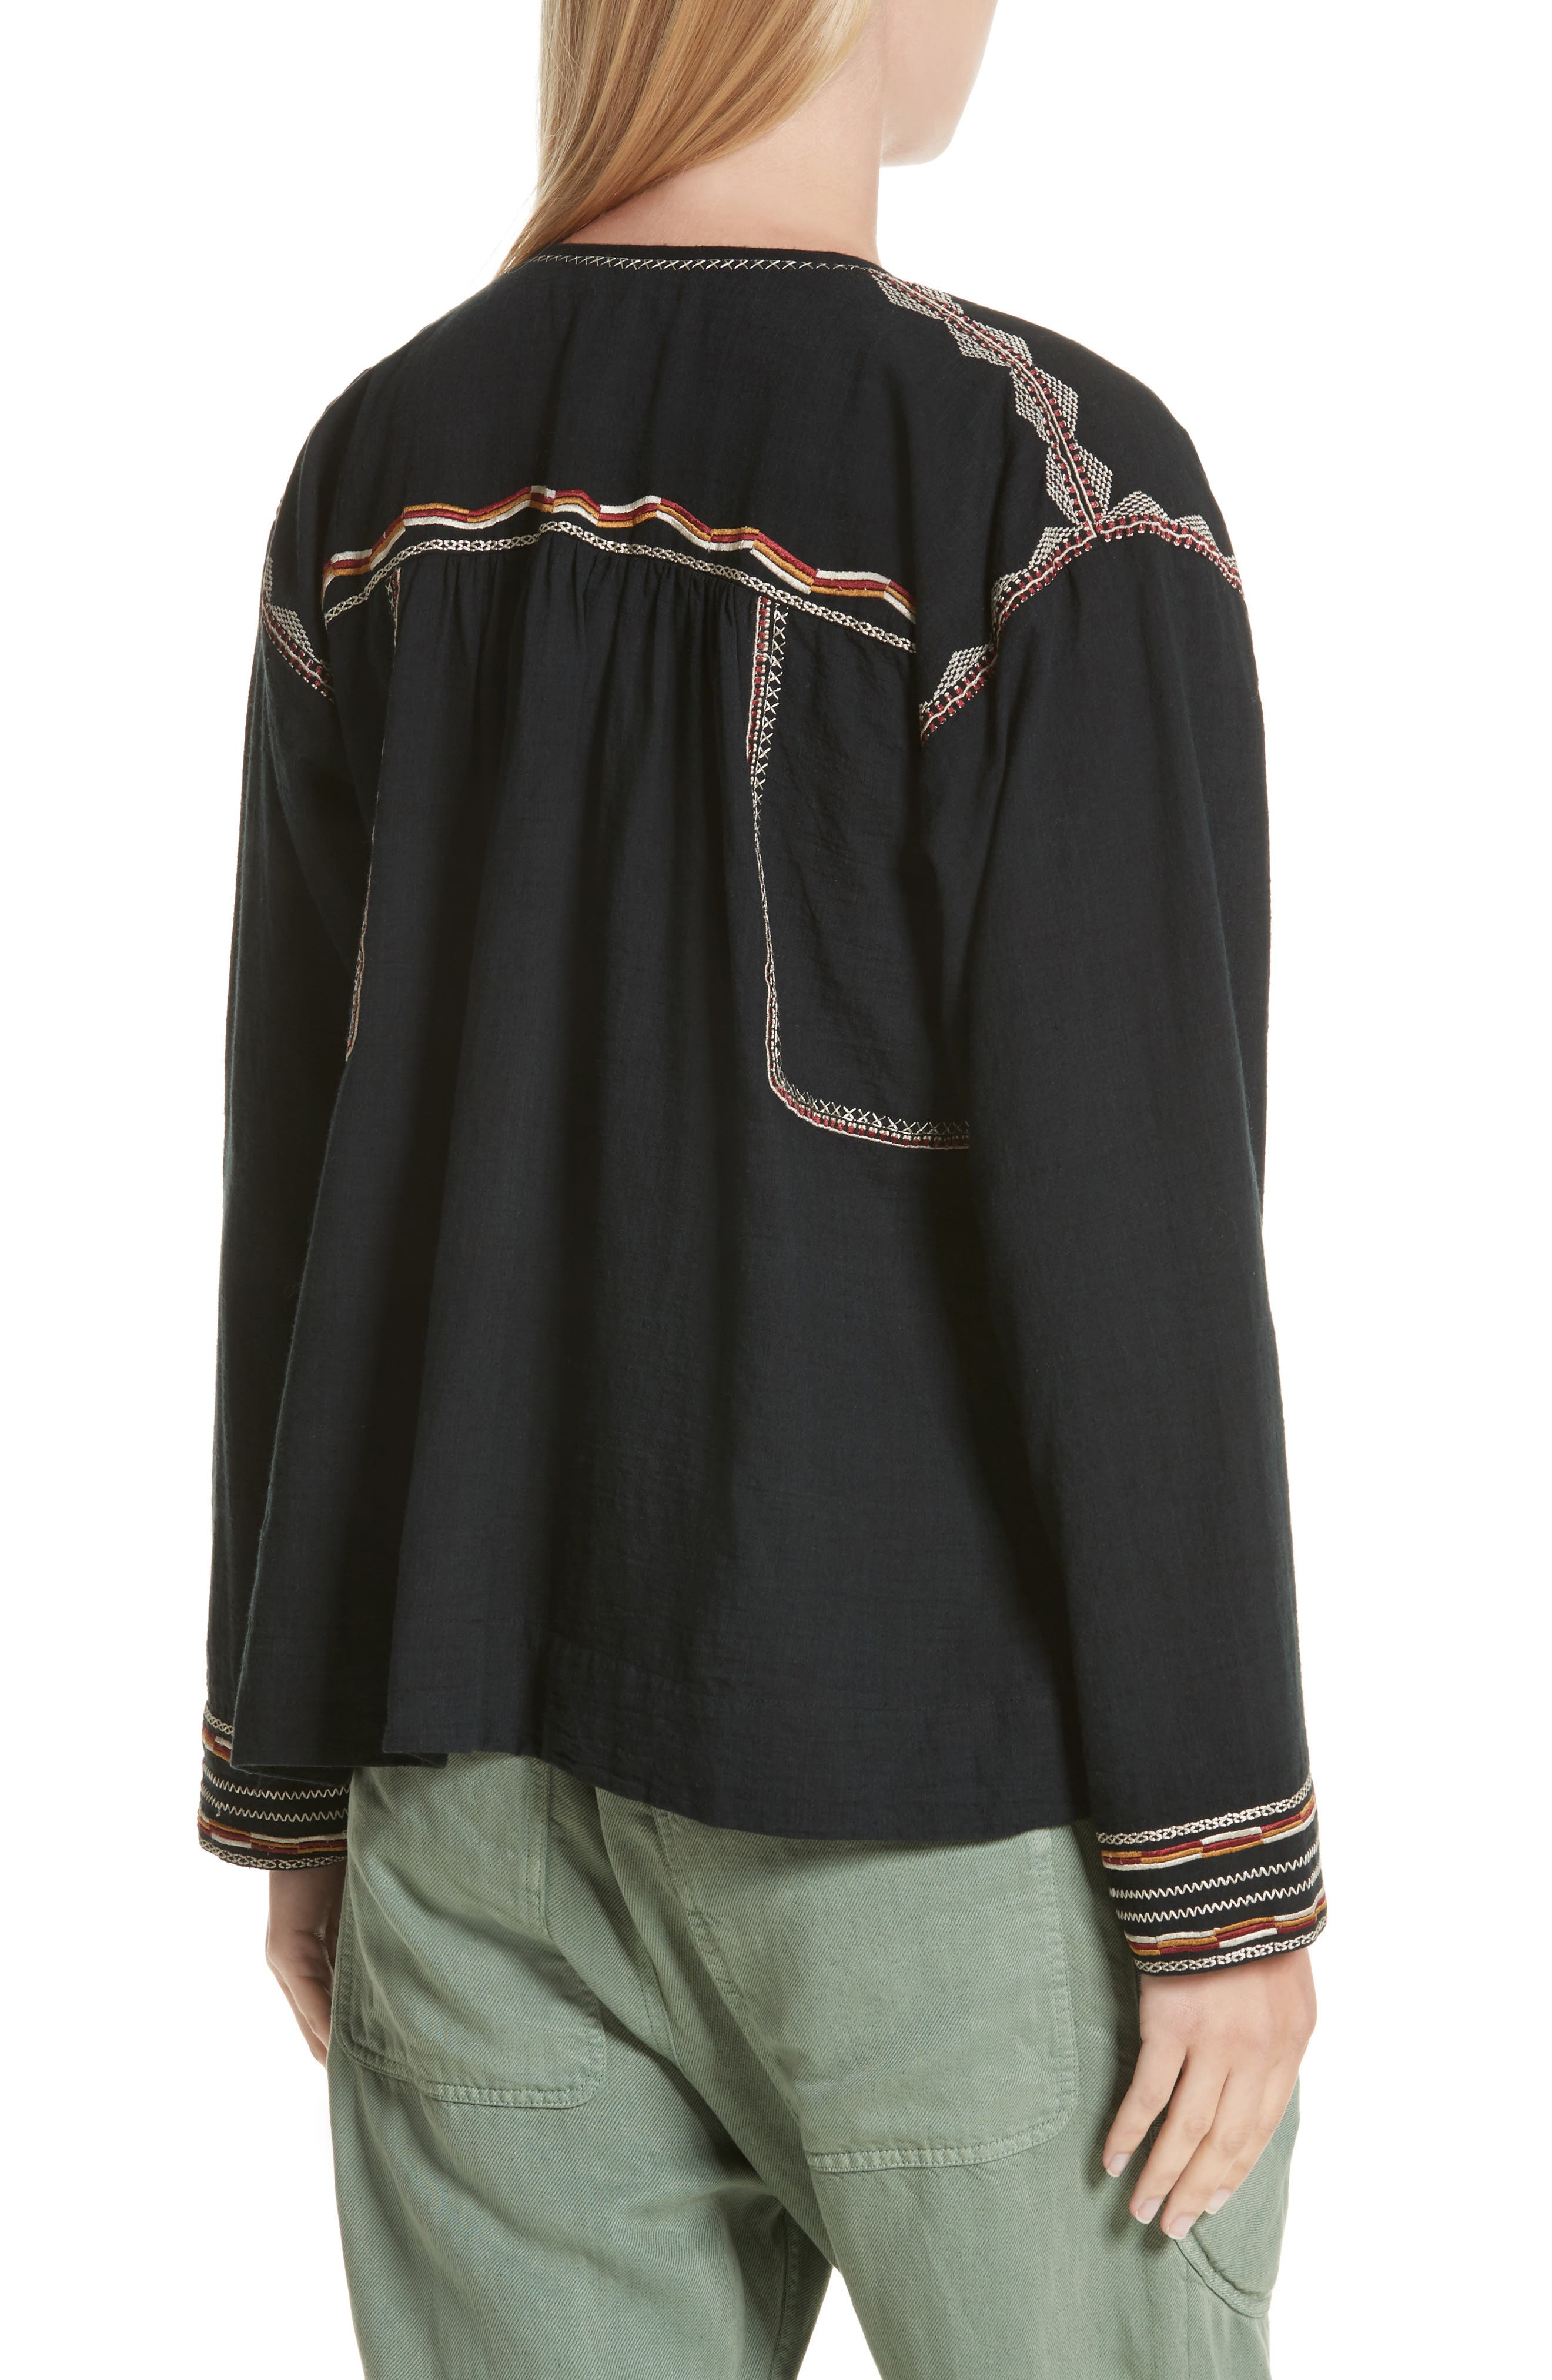 Isabel Marant Étoile Blicky Embroidered Top,                             Alternate thumbnail 2, color,                             001